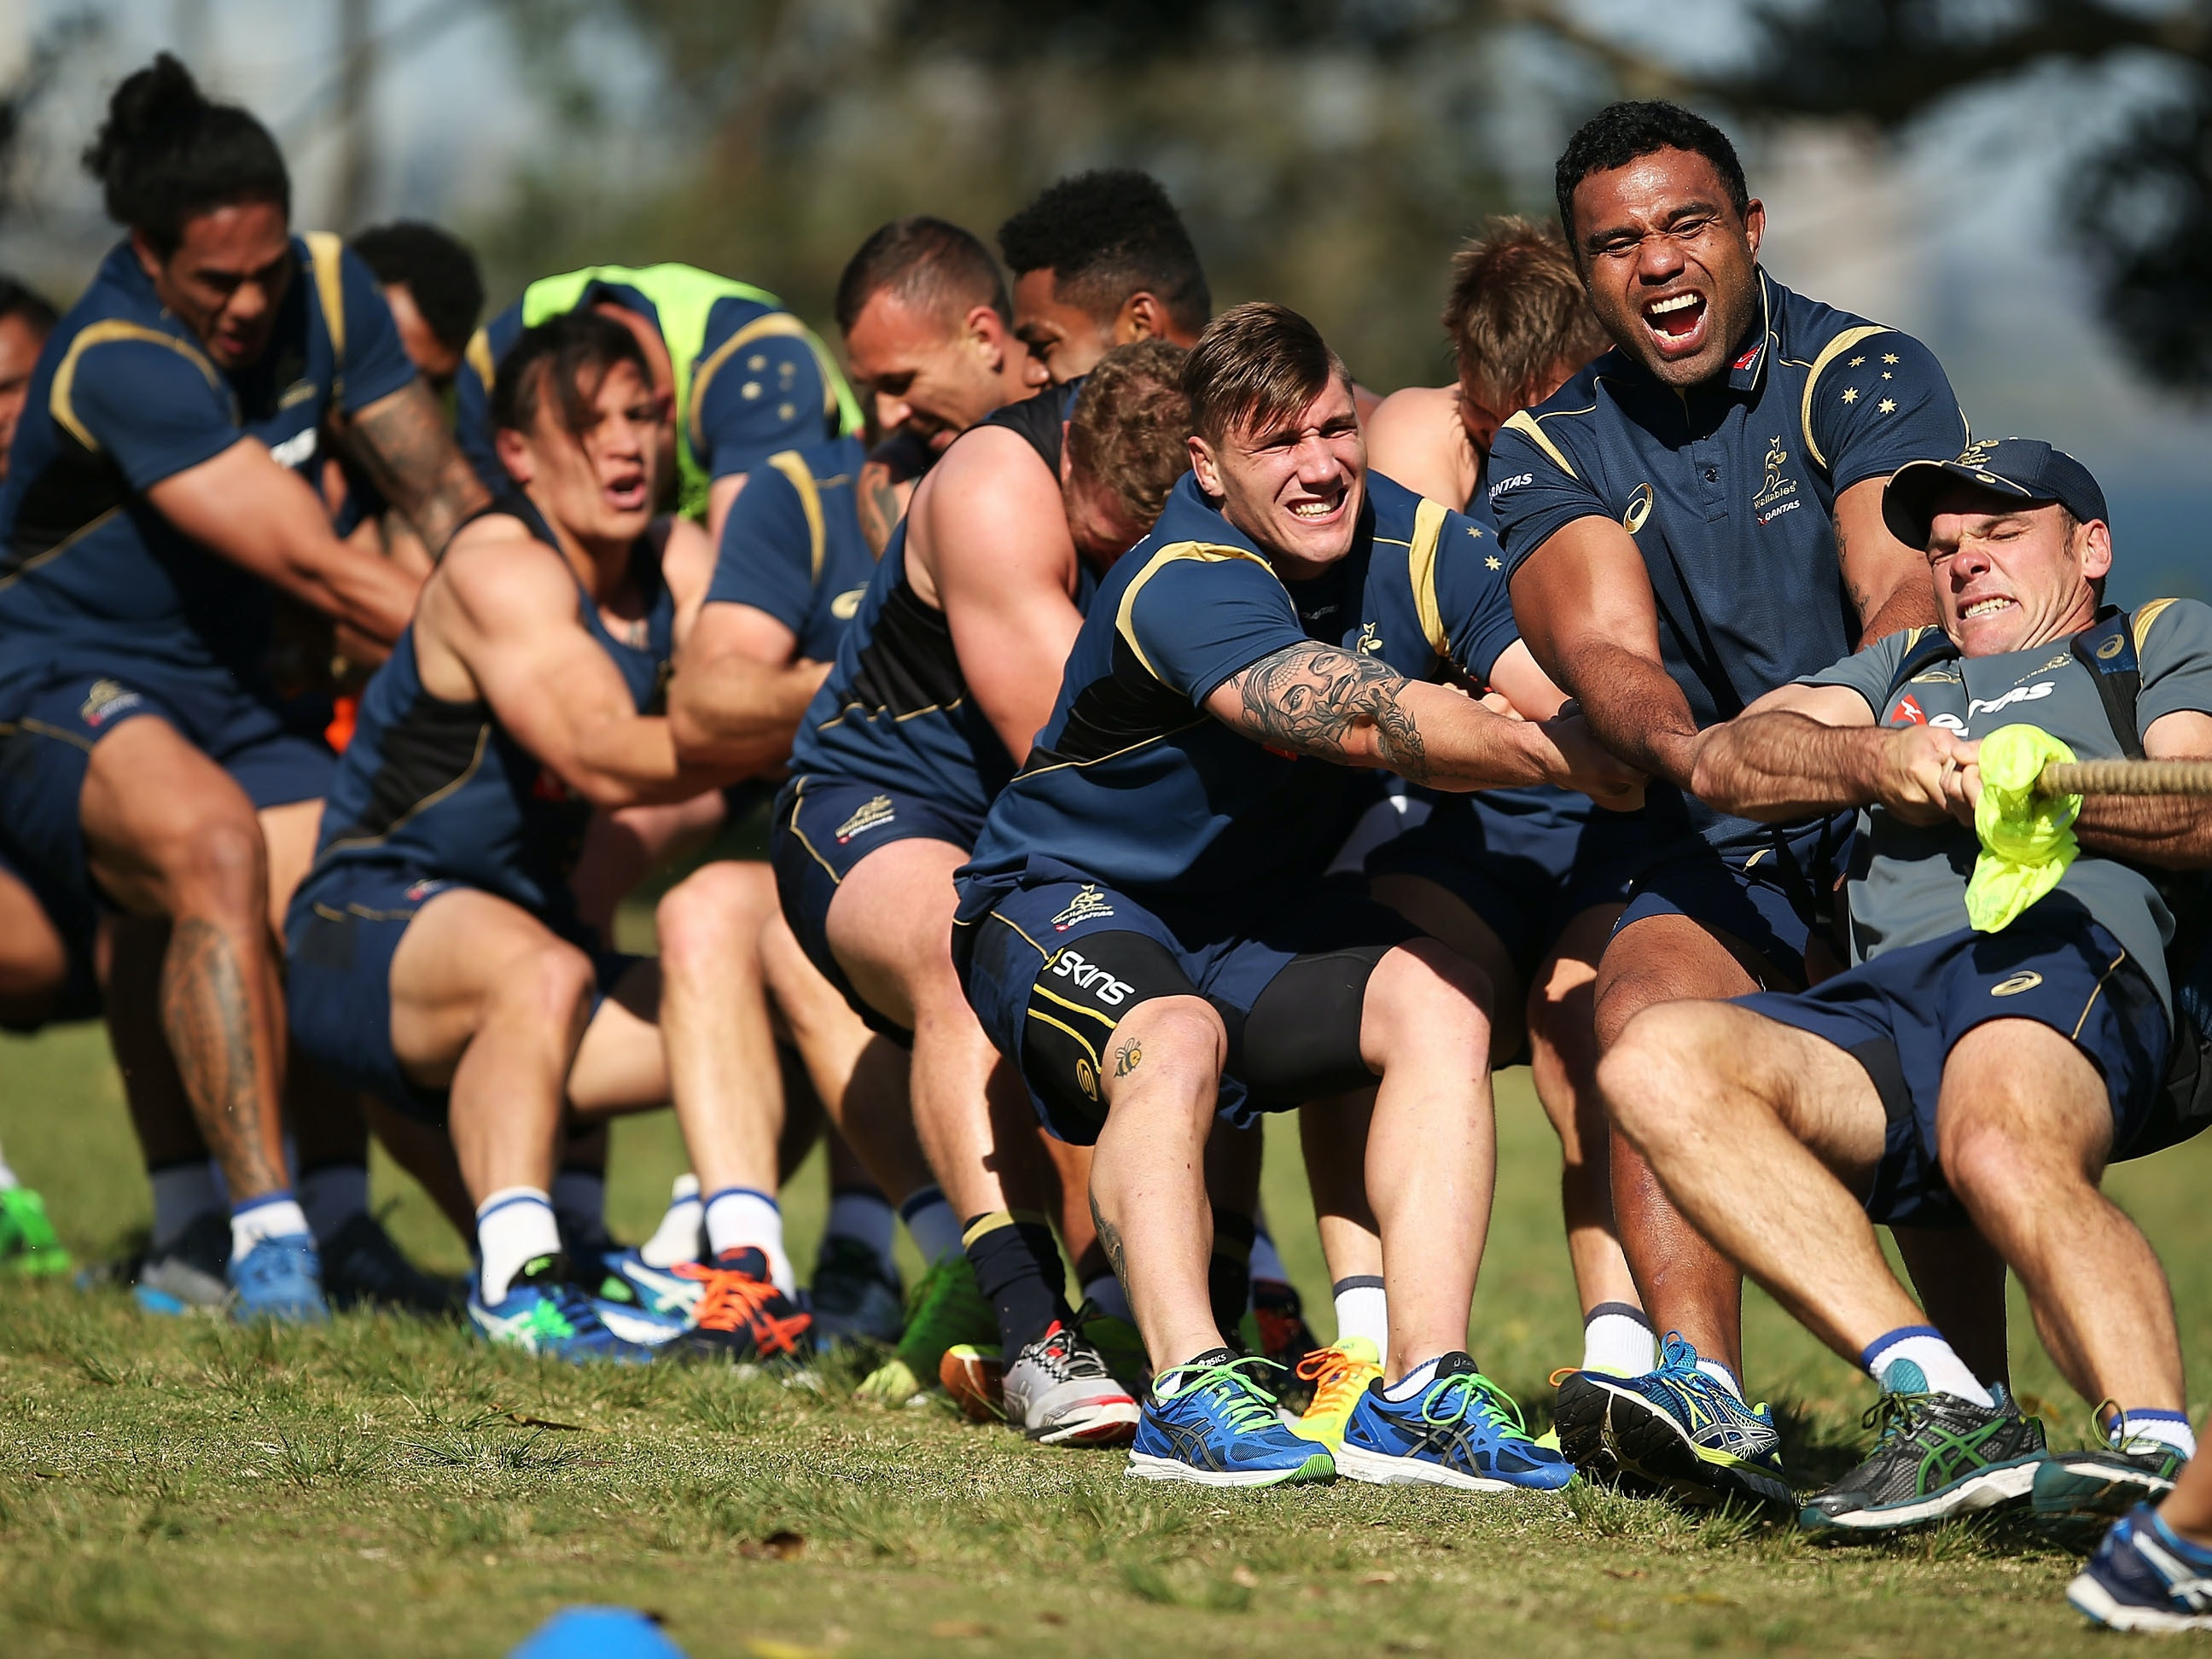 SYDNEY, AUSTRALIA - AUGUST 28:  Wallabies players contest a 'tug of war' during an Australian Wallabies training session at Little Manly Beach on August 28, 2015 in Sydney, Australia.  (Photo by Brendon Thorne/Getty Images)